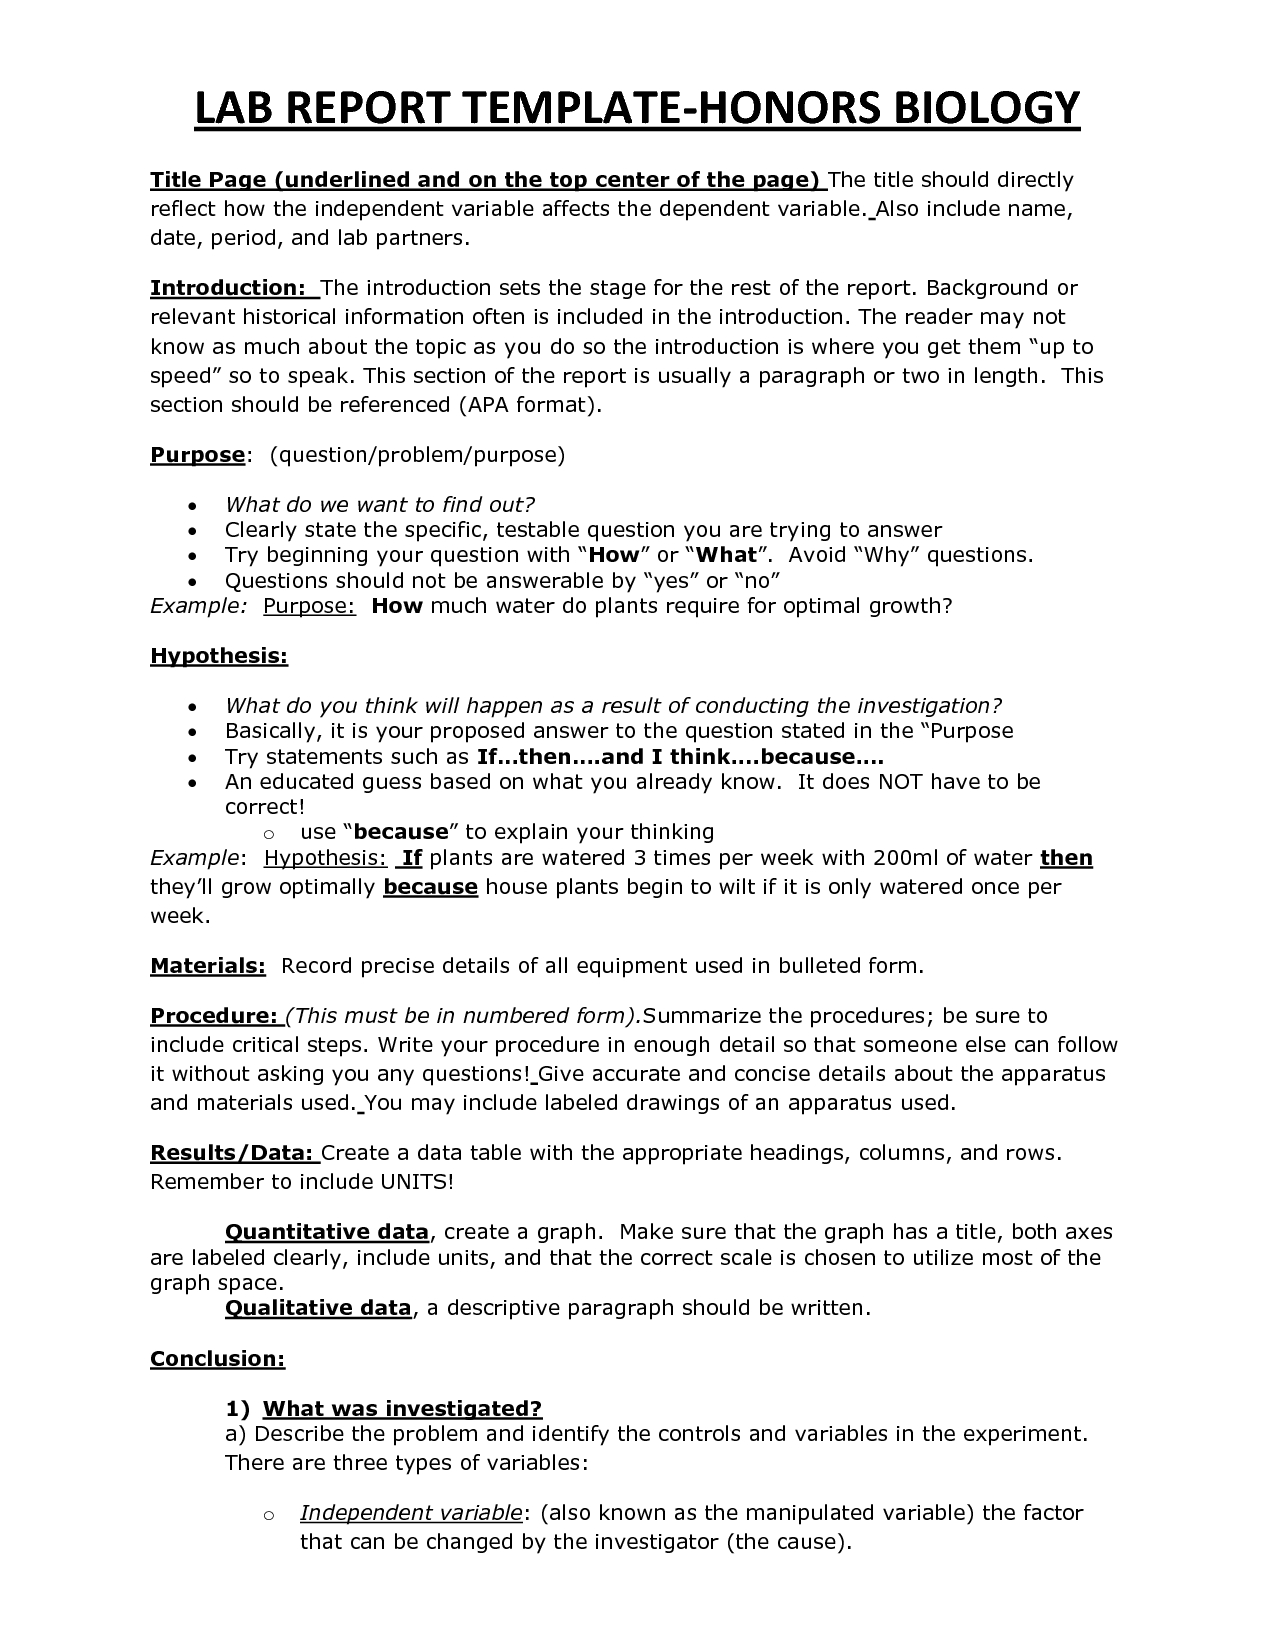 Chs Hbio Lab Report Template  Biology  Lab Report Template Lab Within Template On How To Write A Report